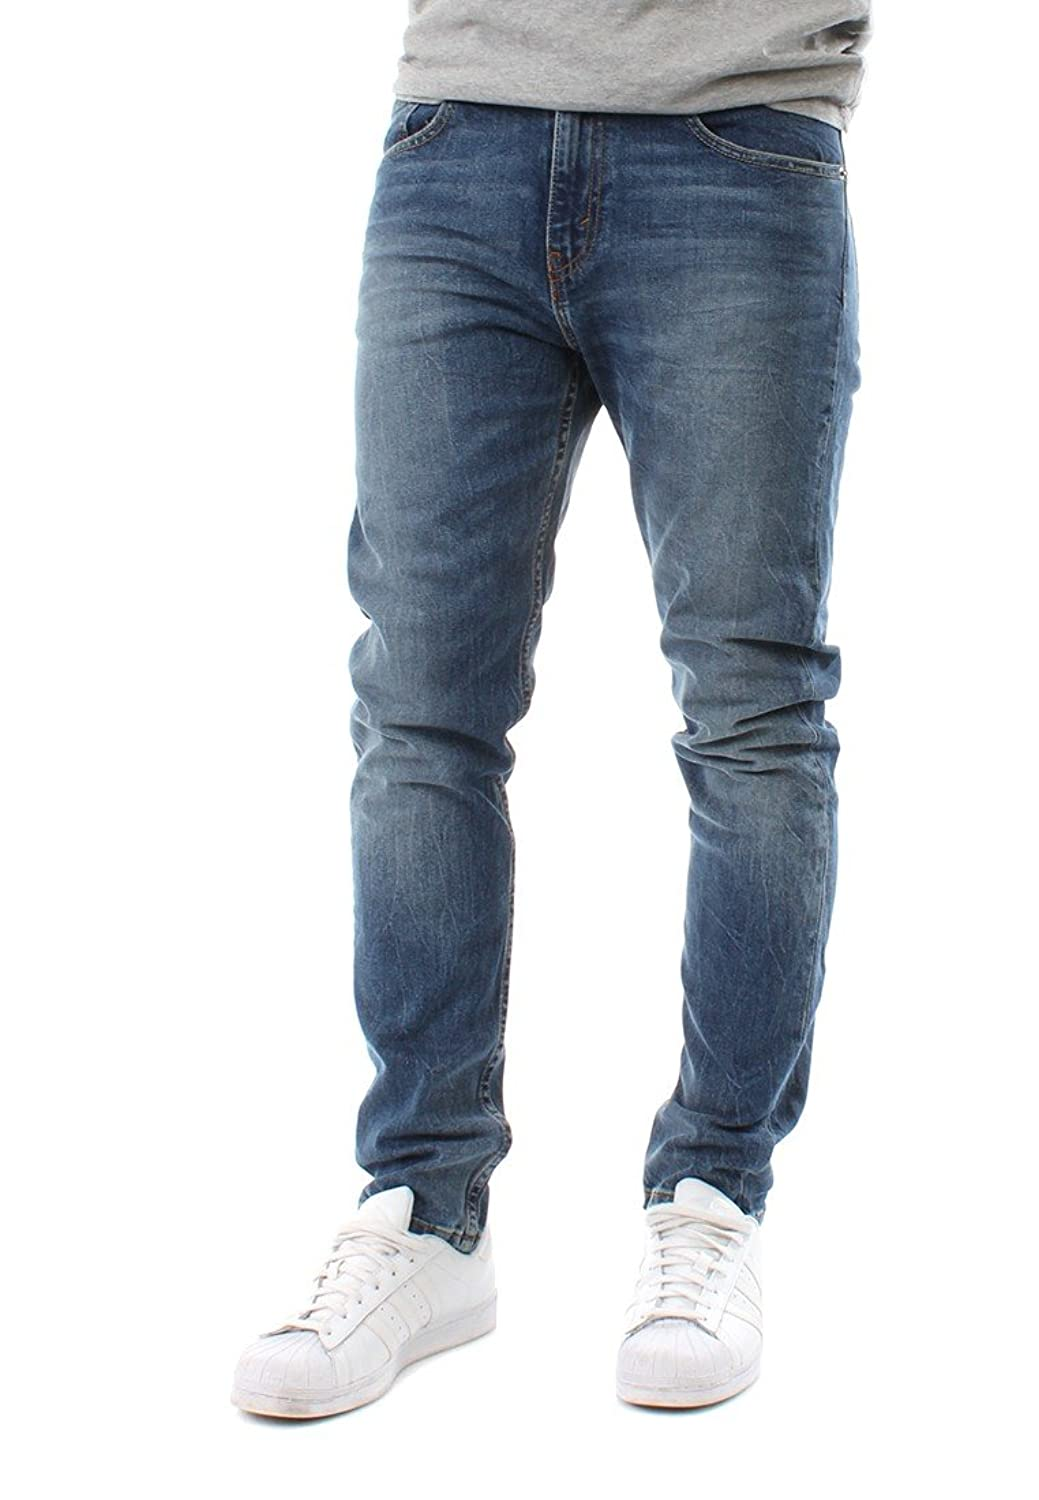 Levis Jeans Men 512 SLIM TAPER FIT 28833-0020 Tanager